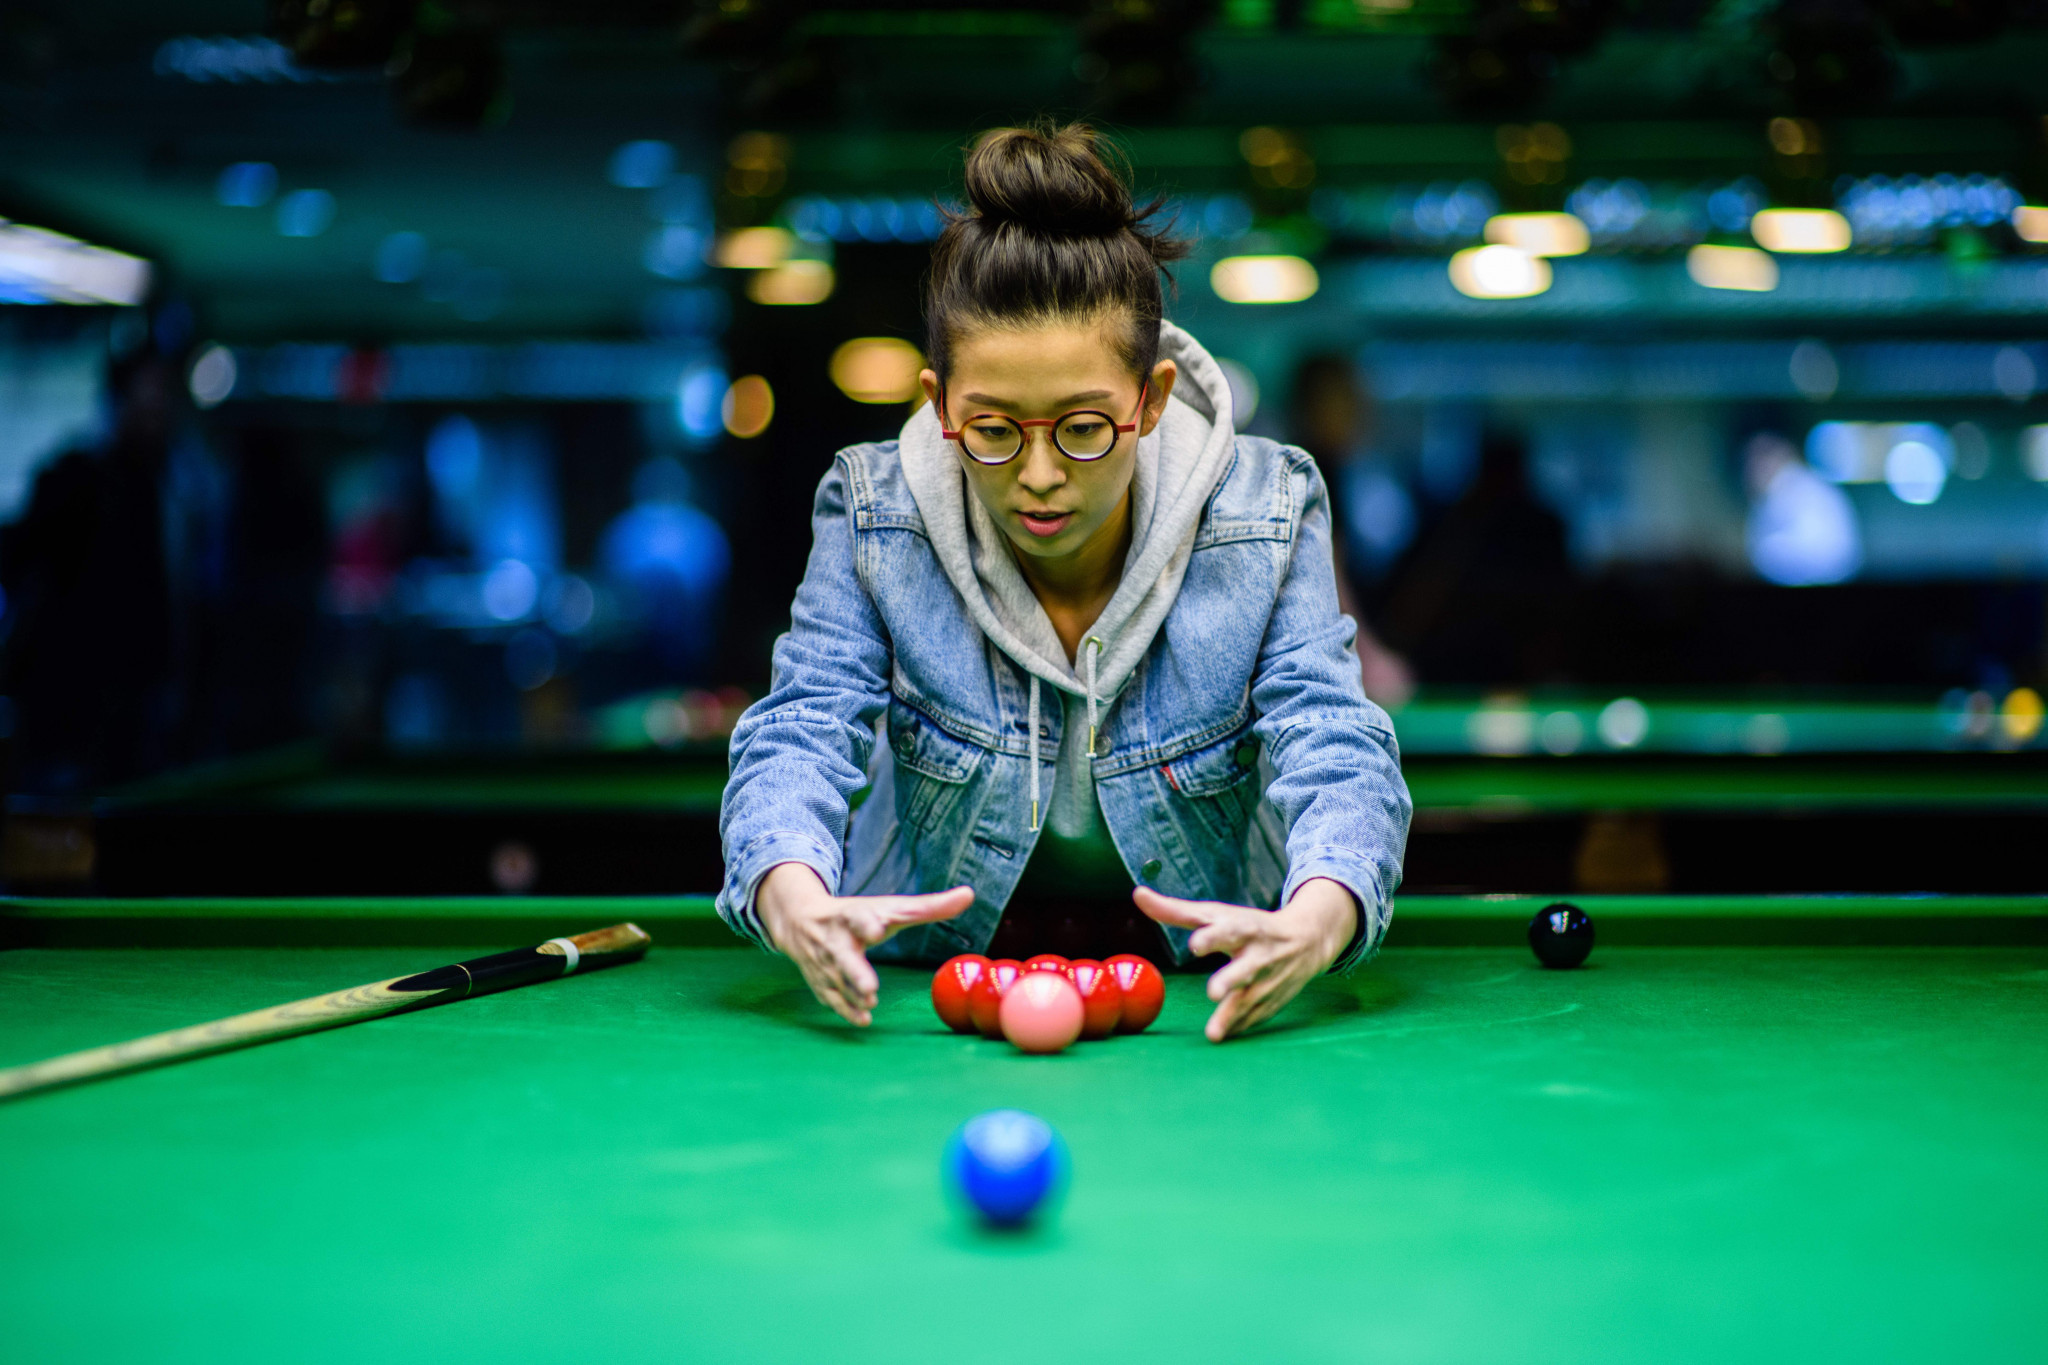 Defending champion suffers quarter-final defeat at World Women's Snooker Championships